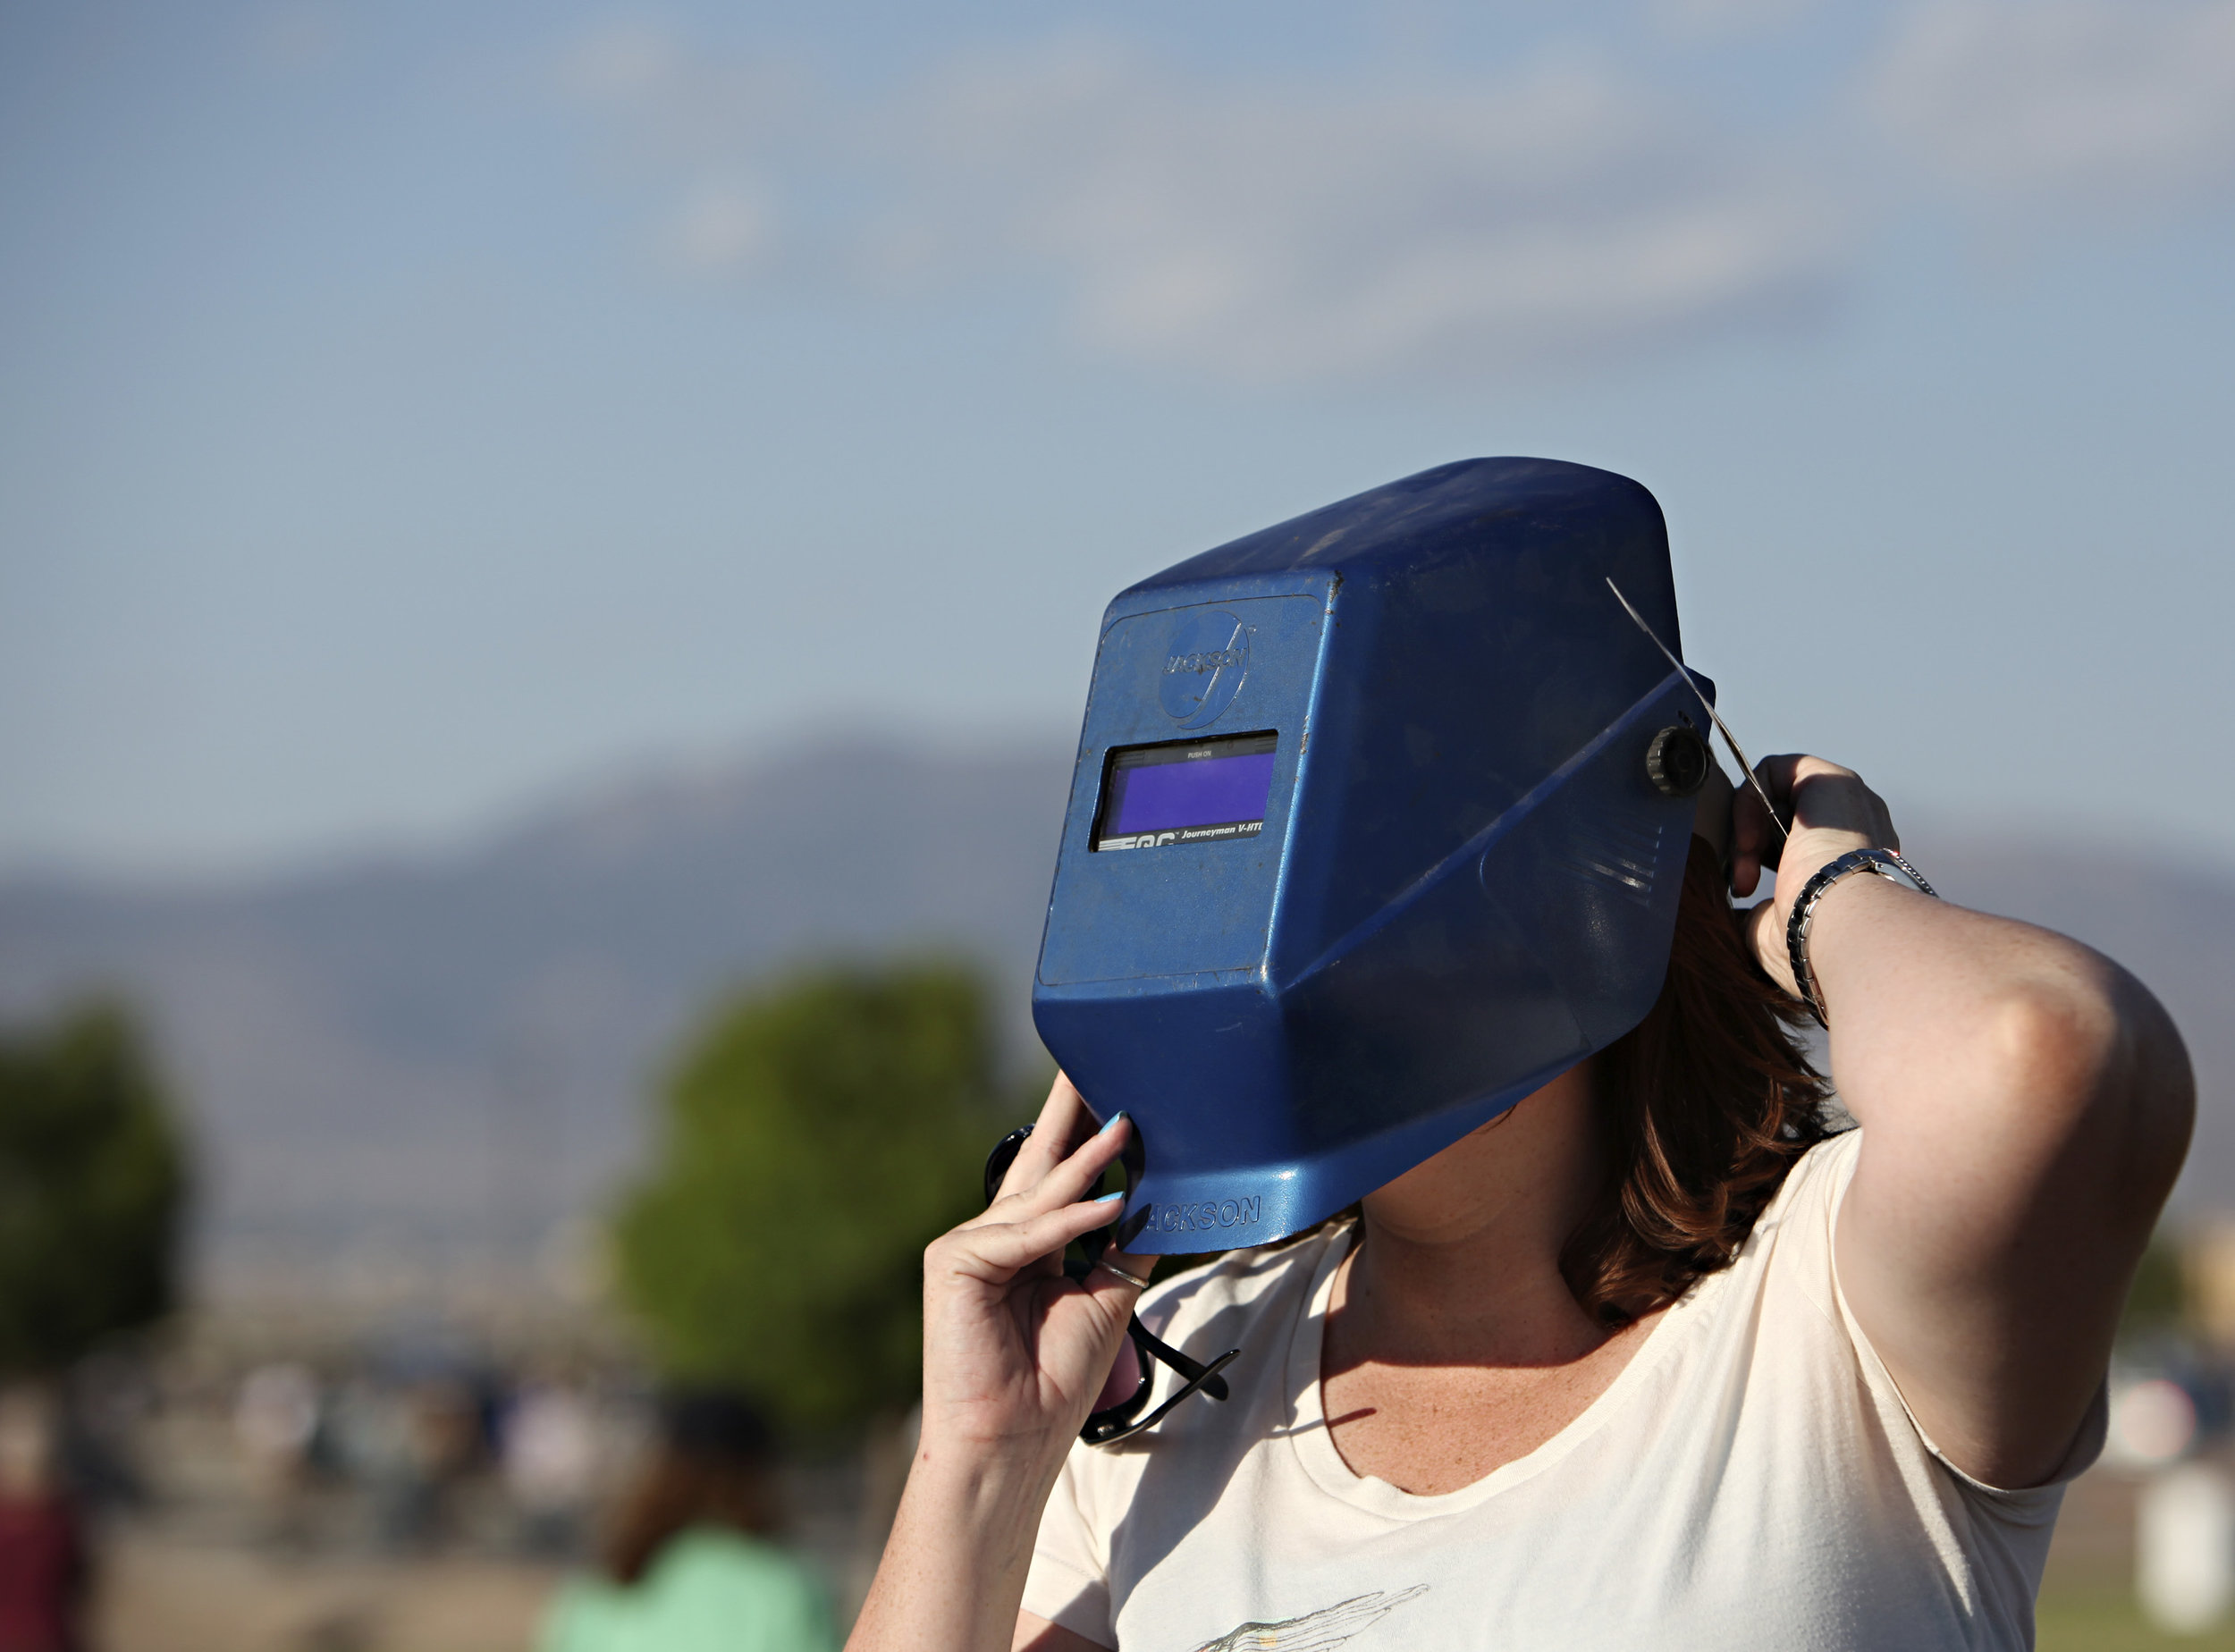 Karen Converse, from Albuquerque, watches the annular solar eclipse through a welder's helmet during the eclipse viewing party near the Hard Rock Casino Presents the Pavilion, Sunday, May 20, 2012, in Albuquerque, NM. (Morgan Petroski/Albuquerque Journal)